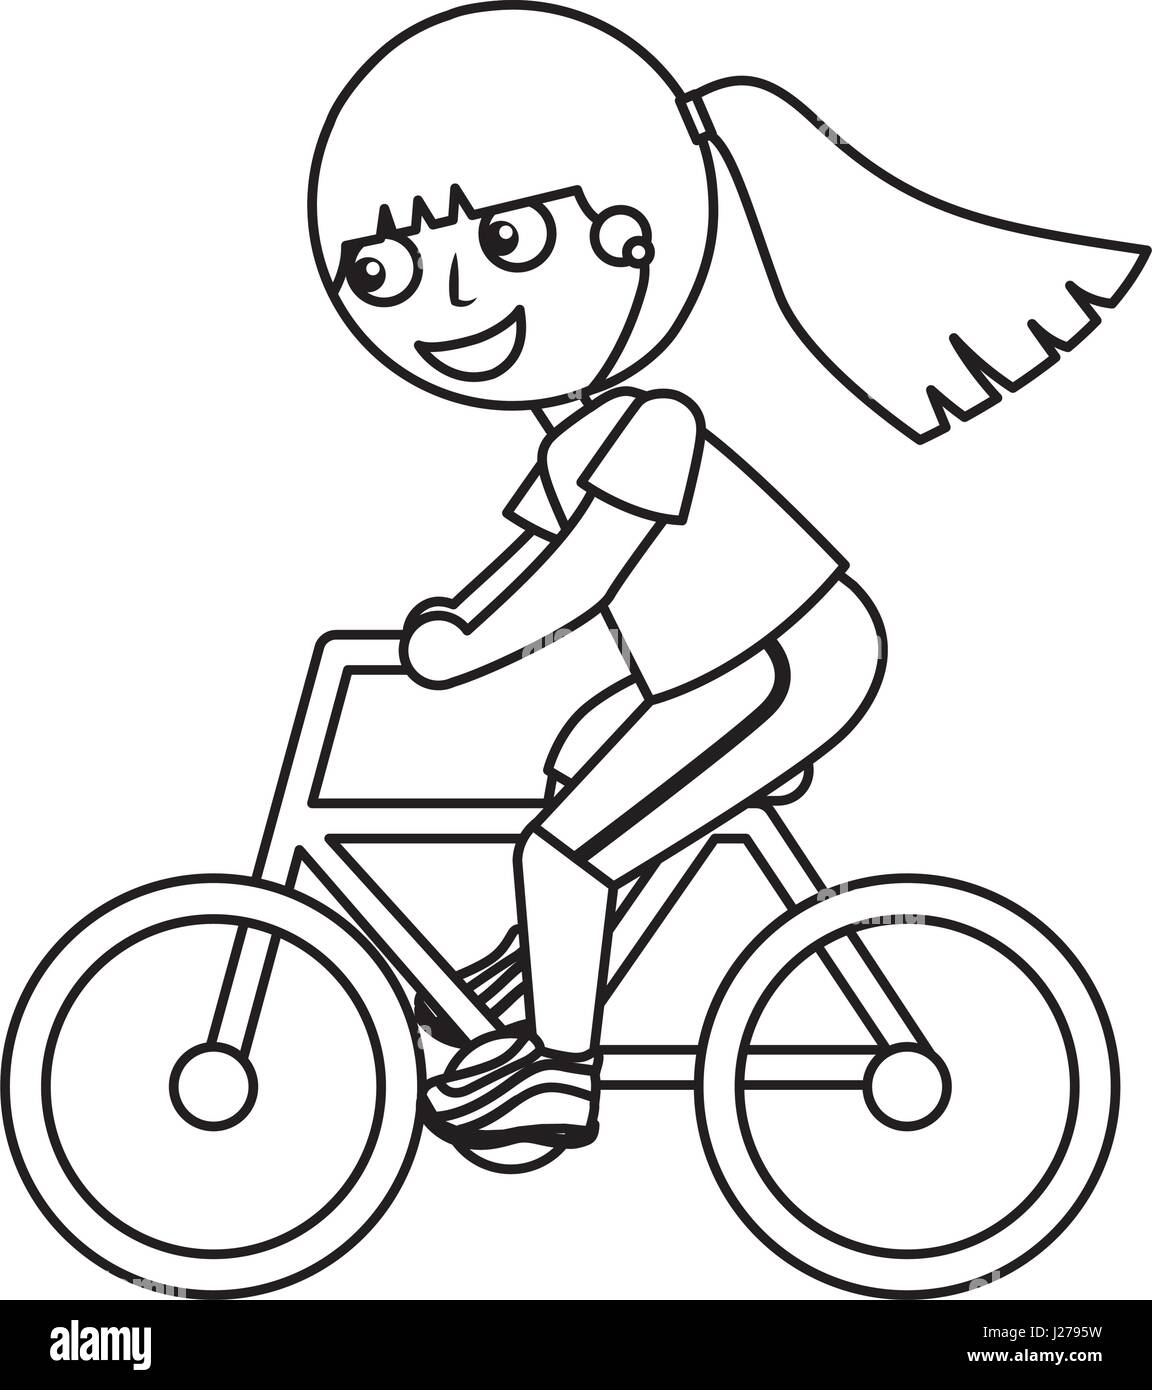 Little Girl Riding Bicycle Stock Vector Art Illustration Vector